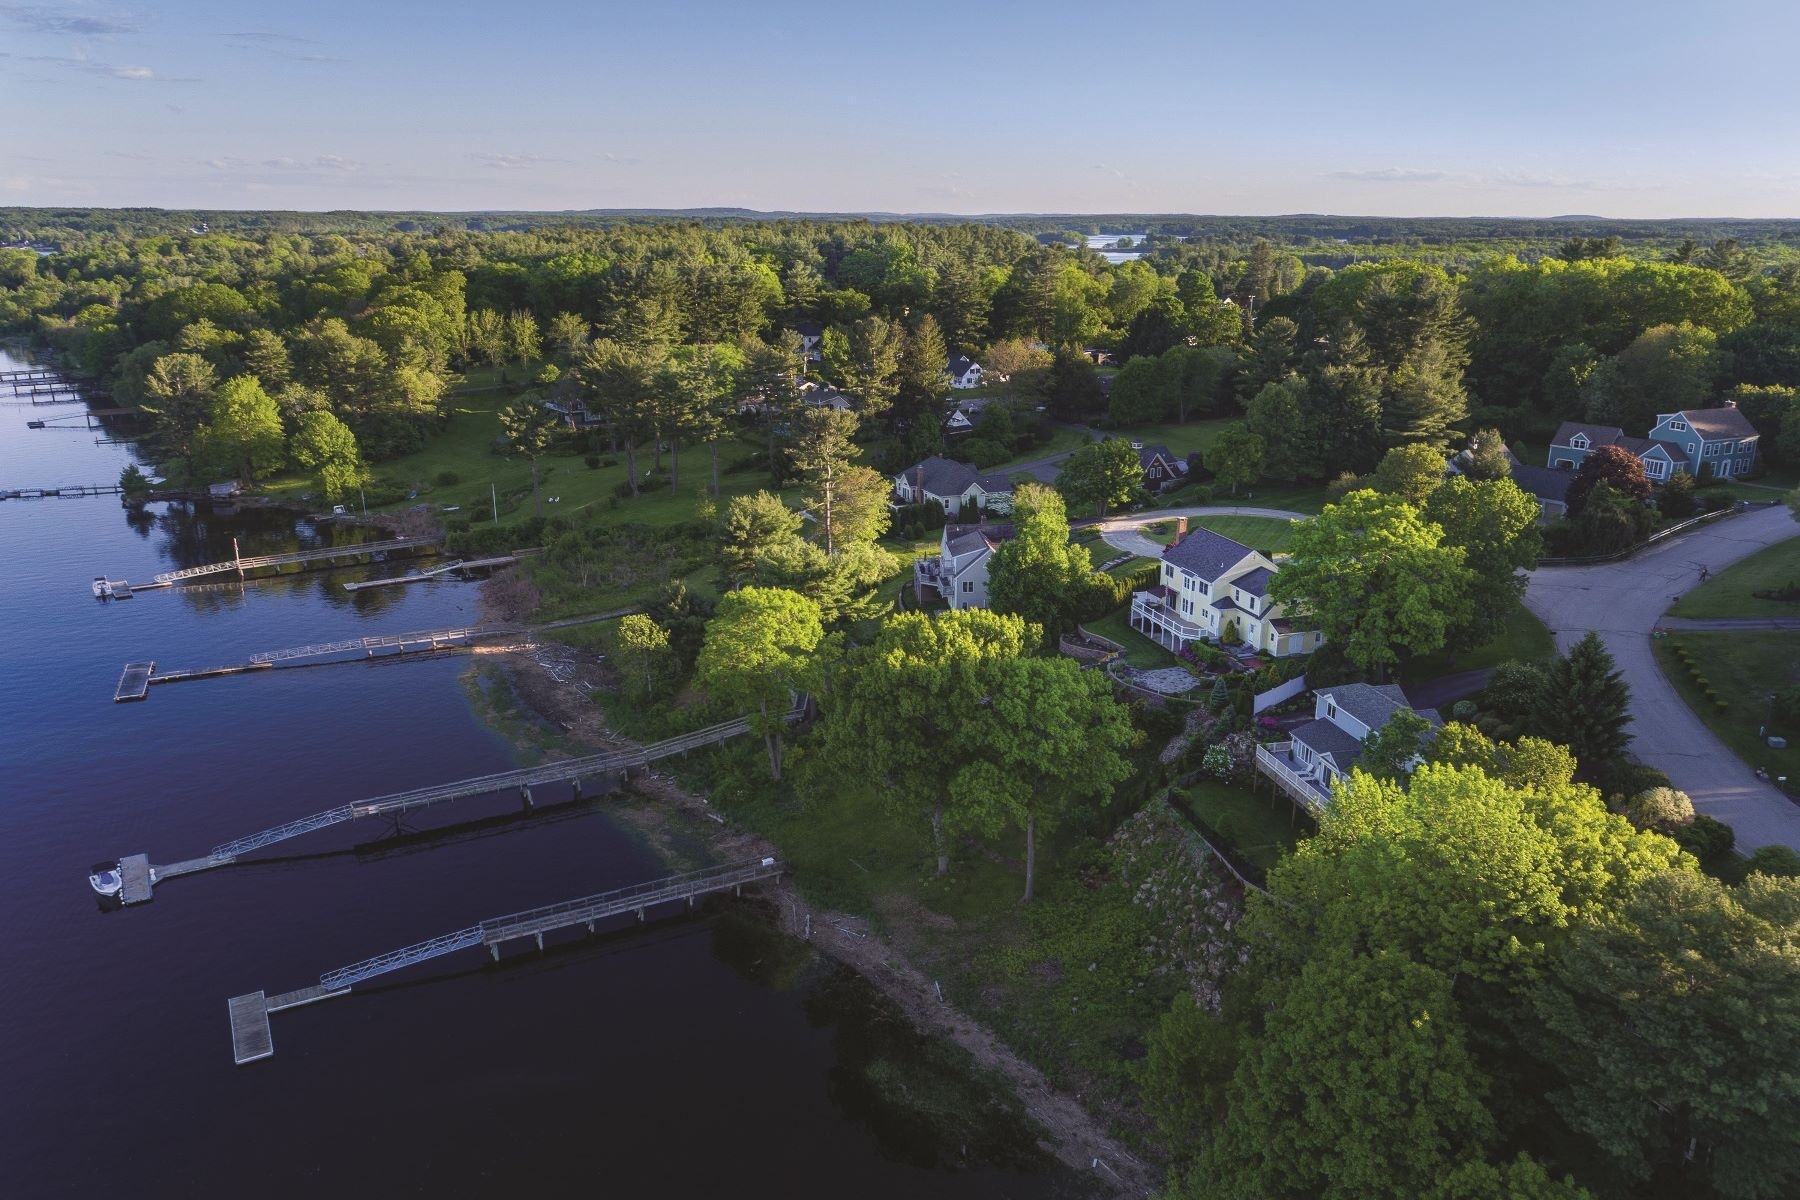 Casa Unifamiliar por un Venta en Direct Waterfront Home with Private Dock at Landing Way 13 Landing Way Dover, Nueva Hampshire, 03820 Estados Unidos